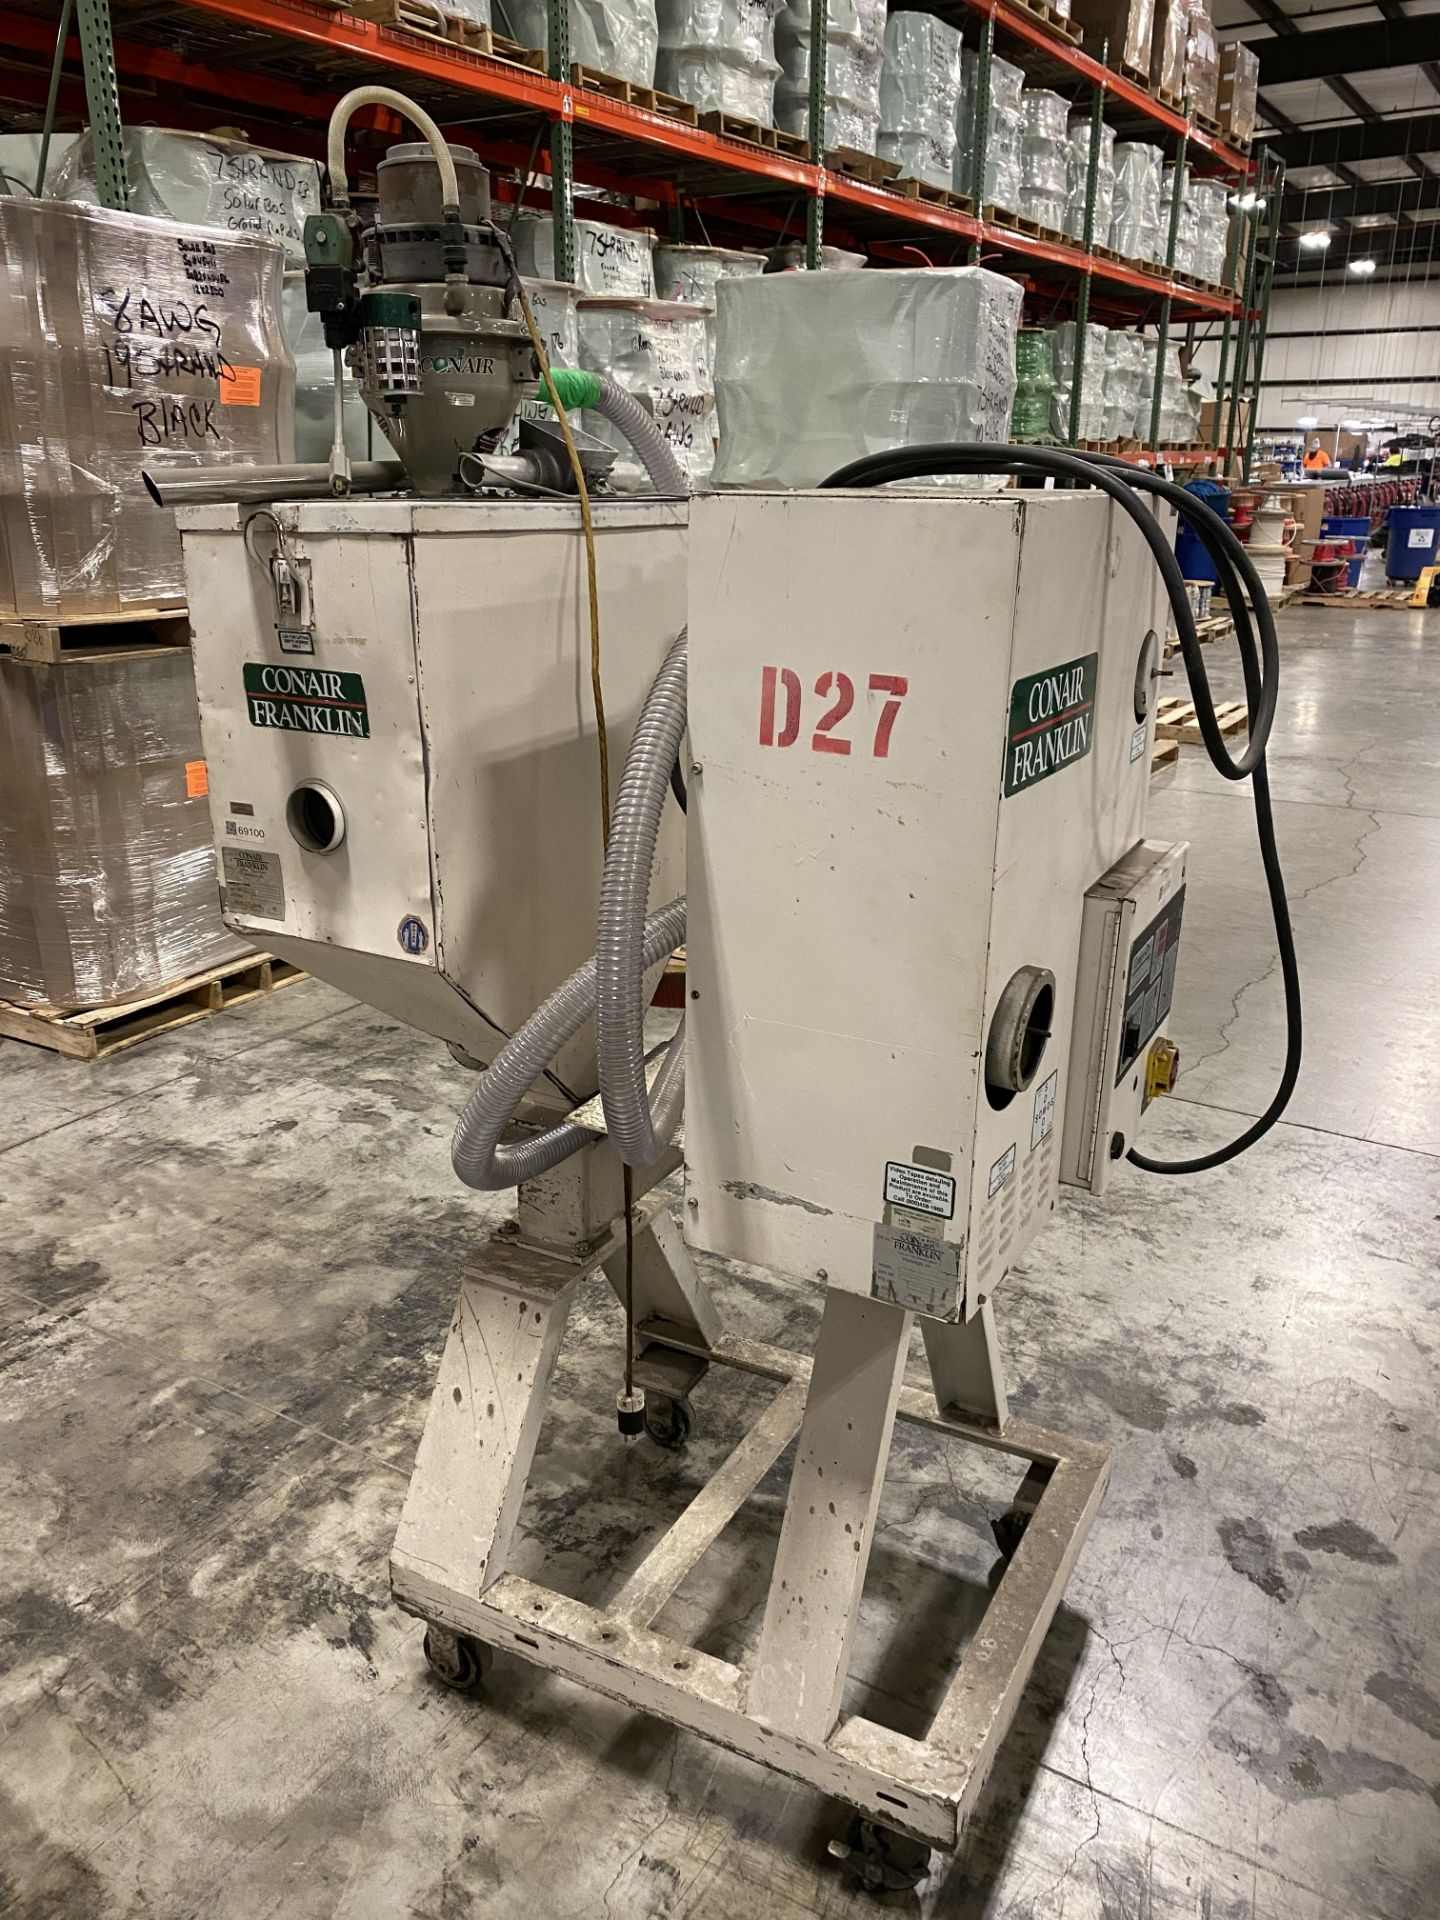 Conair Franklin DHB3A4S030050 Machine Mount Dryer - Image 4 of 8